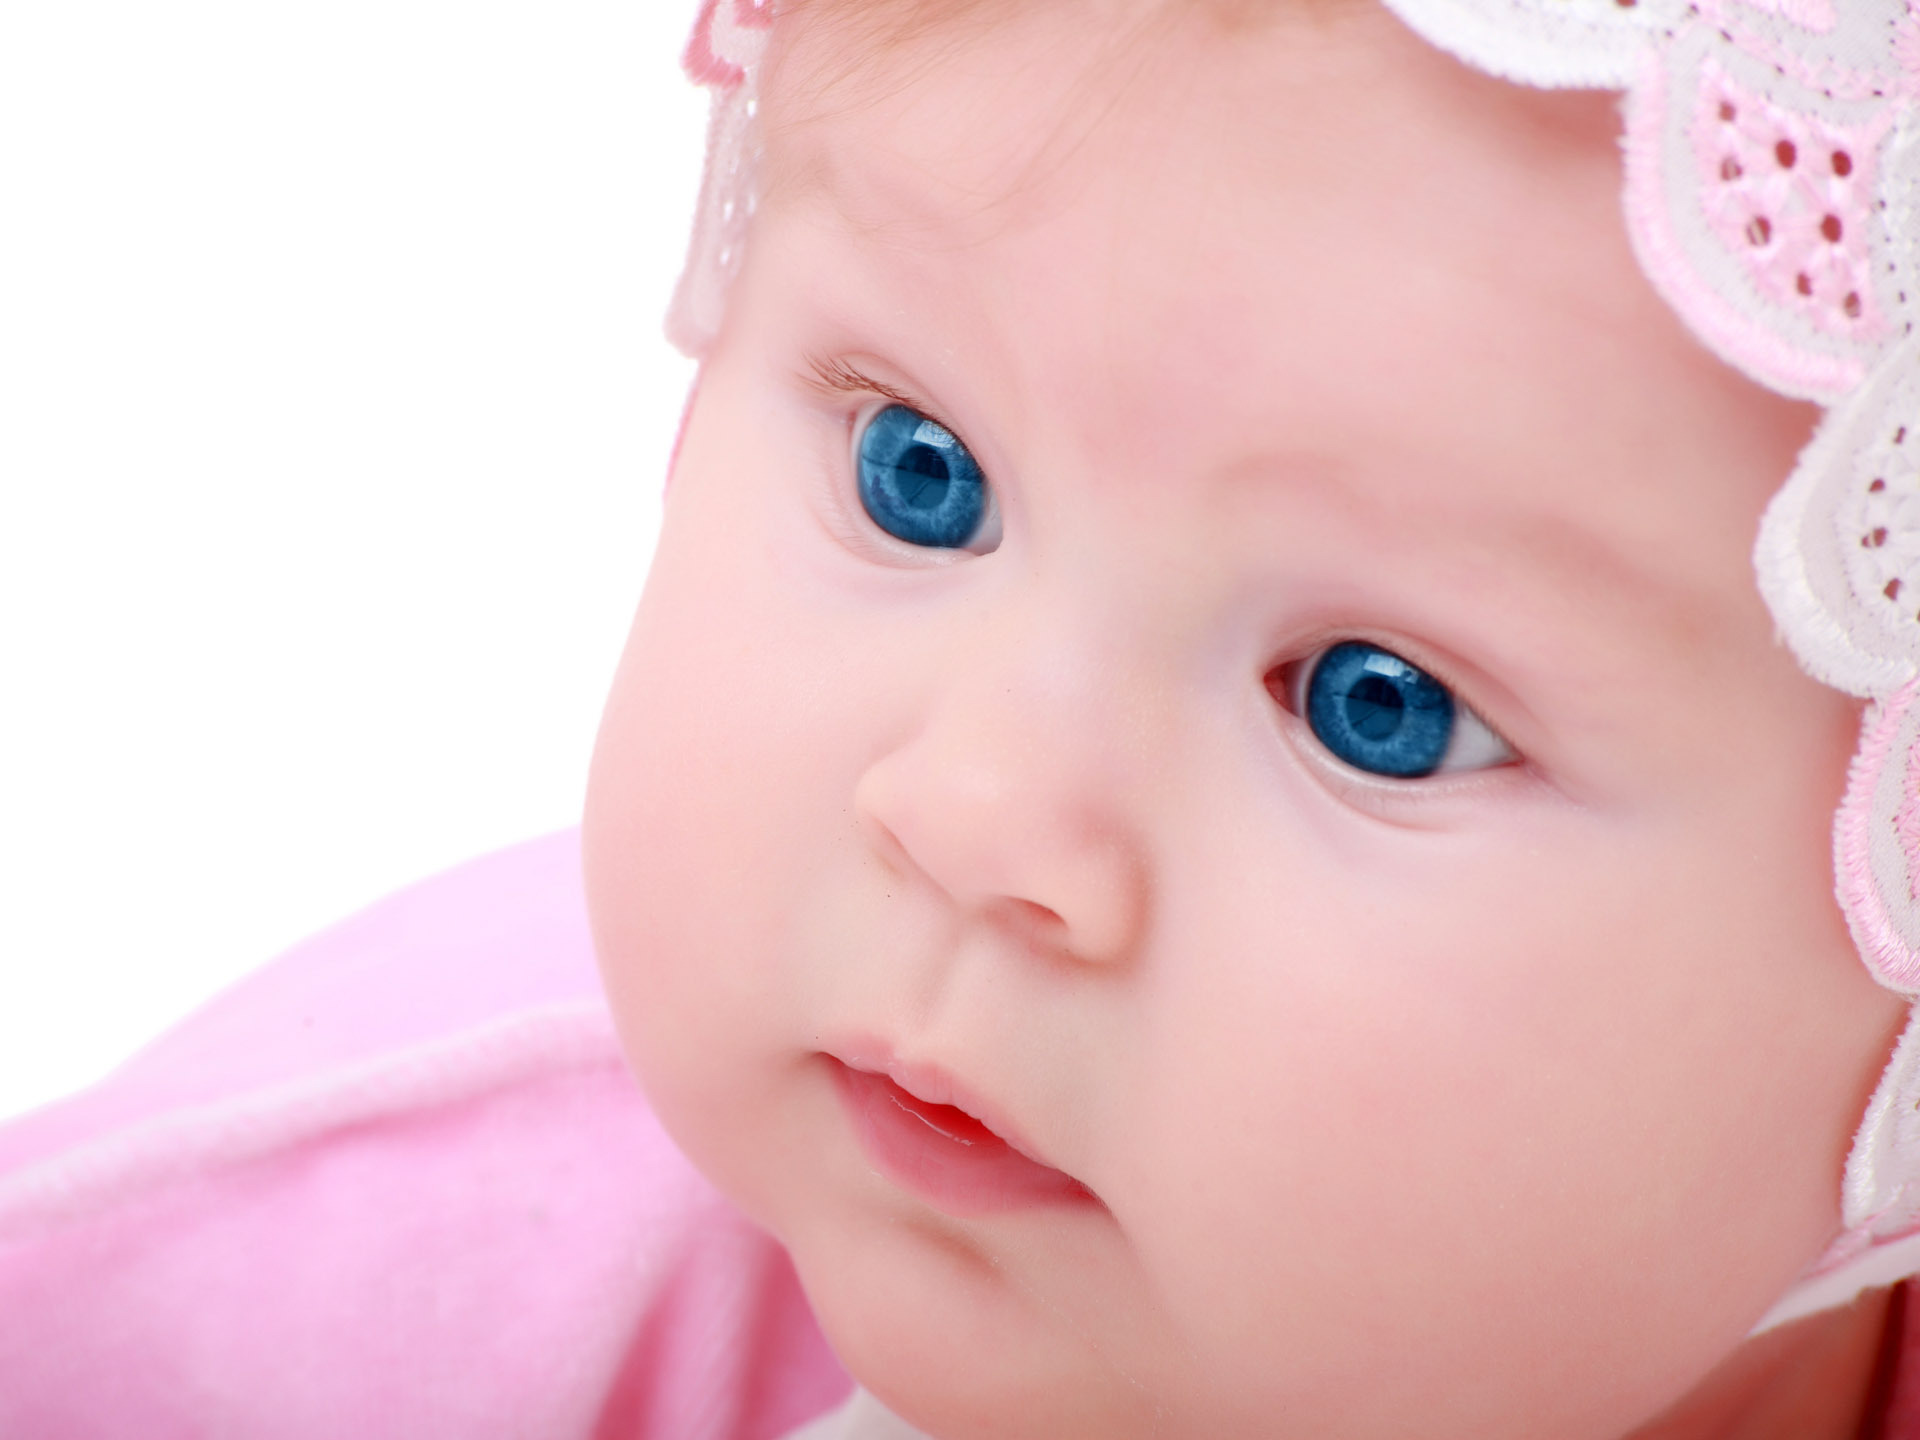 Blue eyes baby - Sweety Babies Photo (8885647) - Fanpop